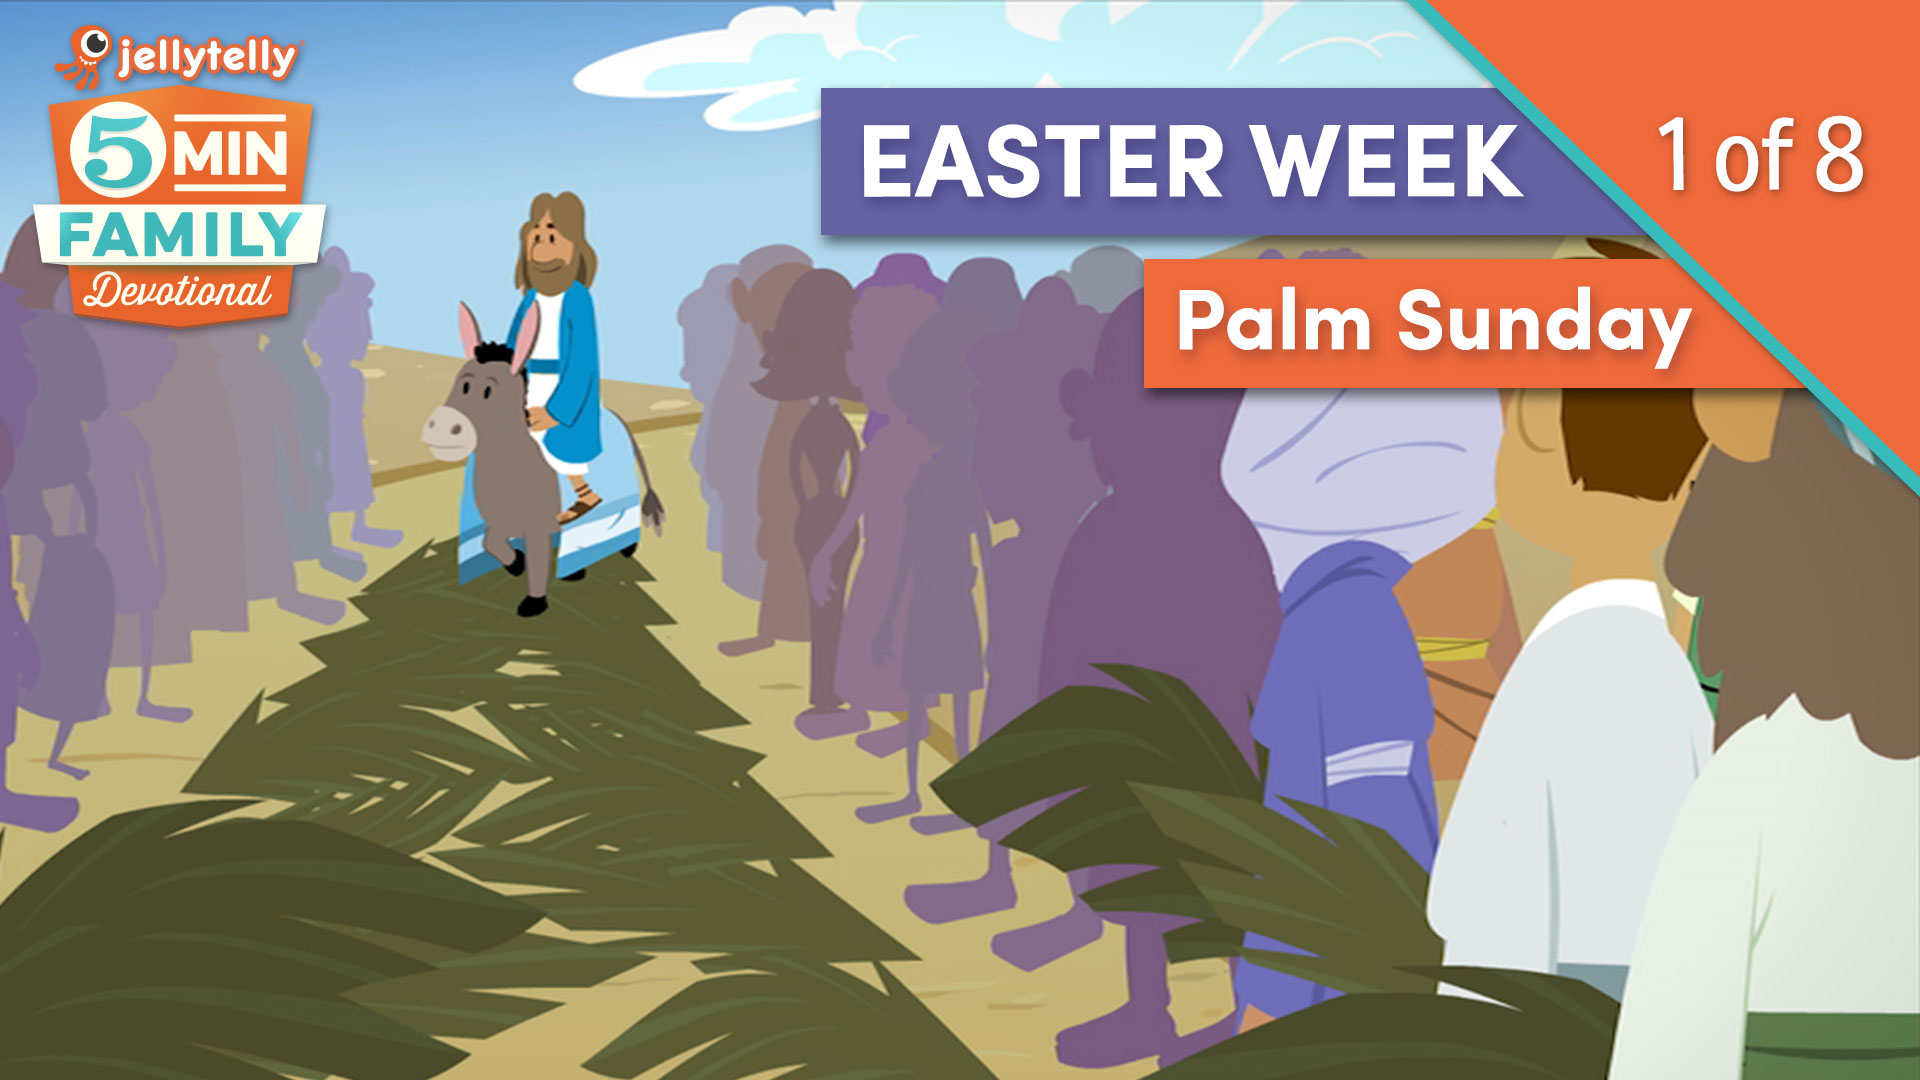 5mfd easter 01 palm sunday preview image